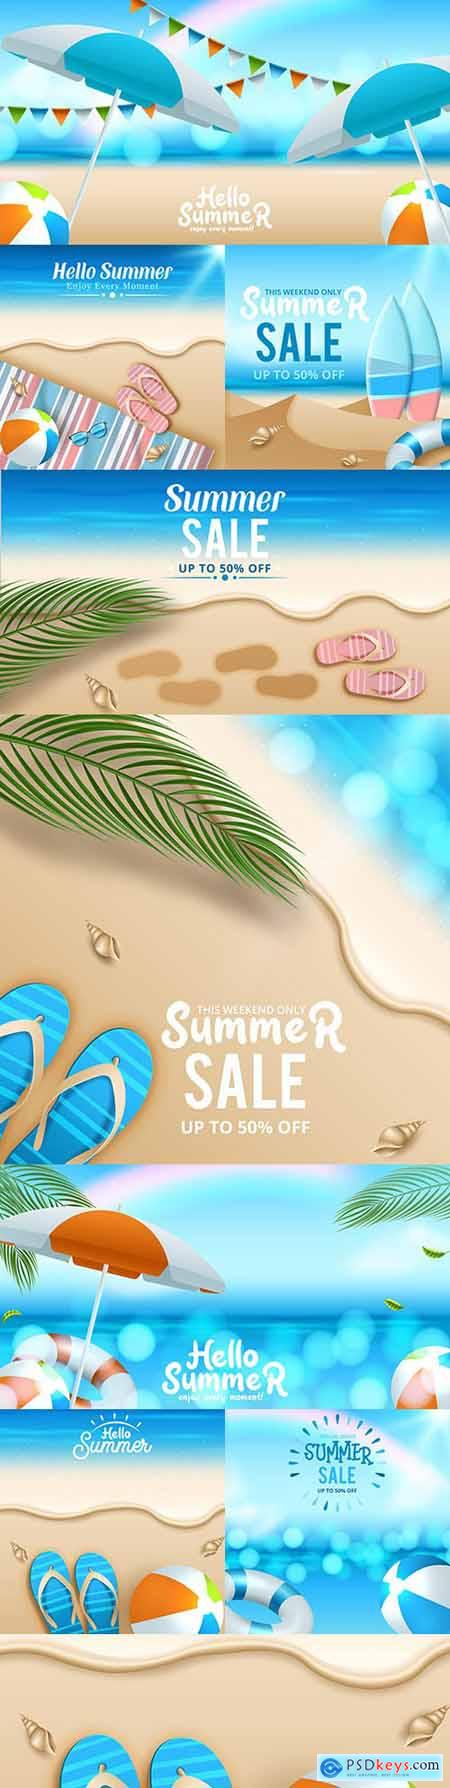 Tropical sea with bright sun summer sale banner design